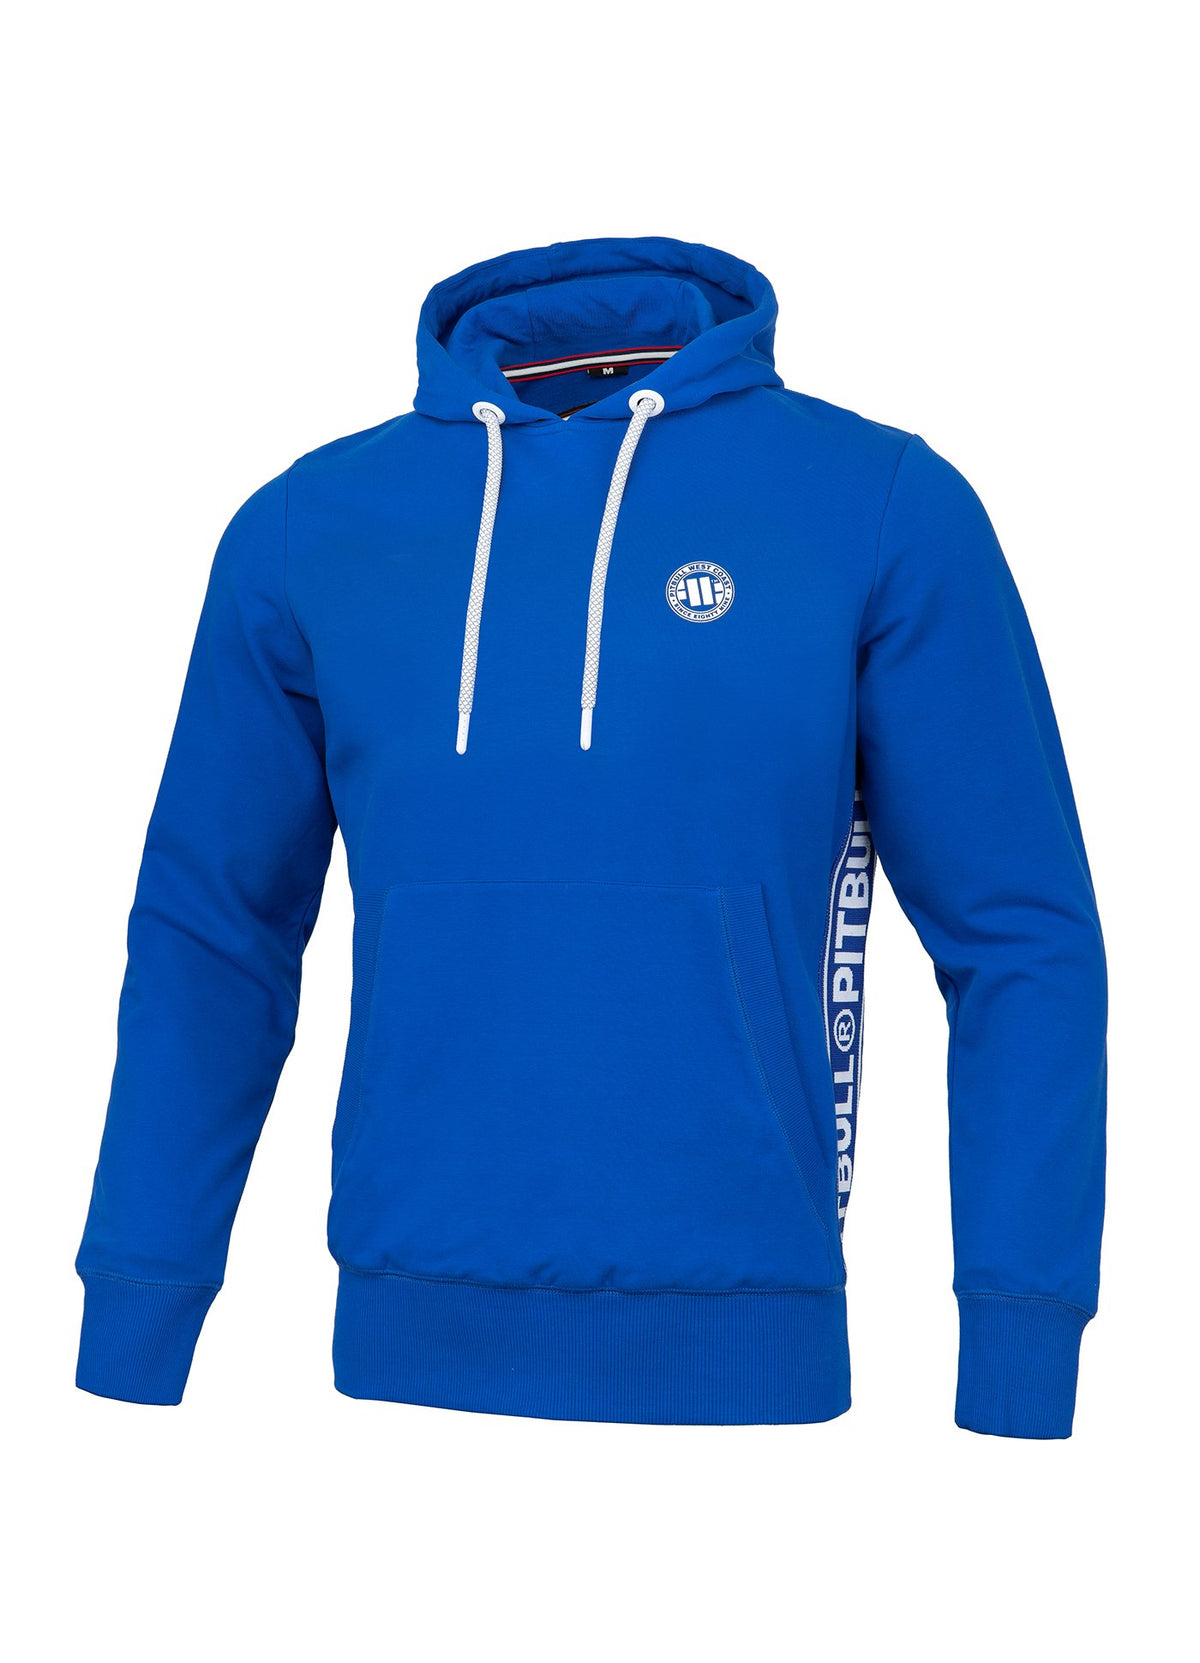 Hooded Small Logo FRENCH TERRY Royal Blue - Pitbull West Coast U.S.A.